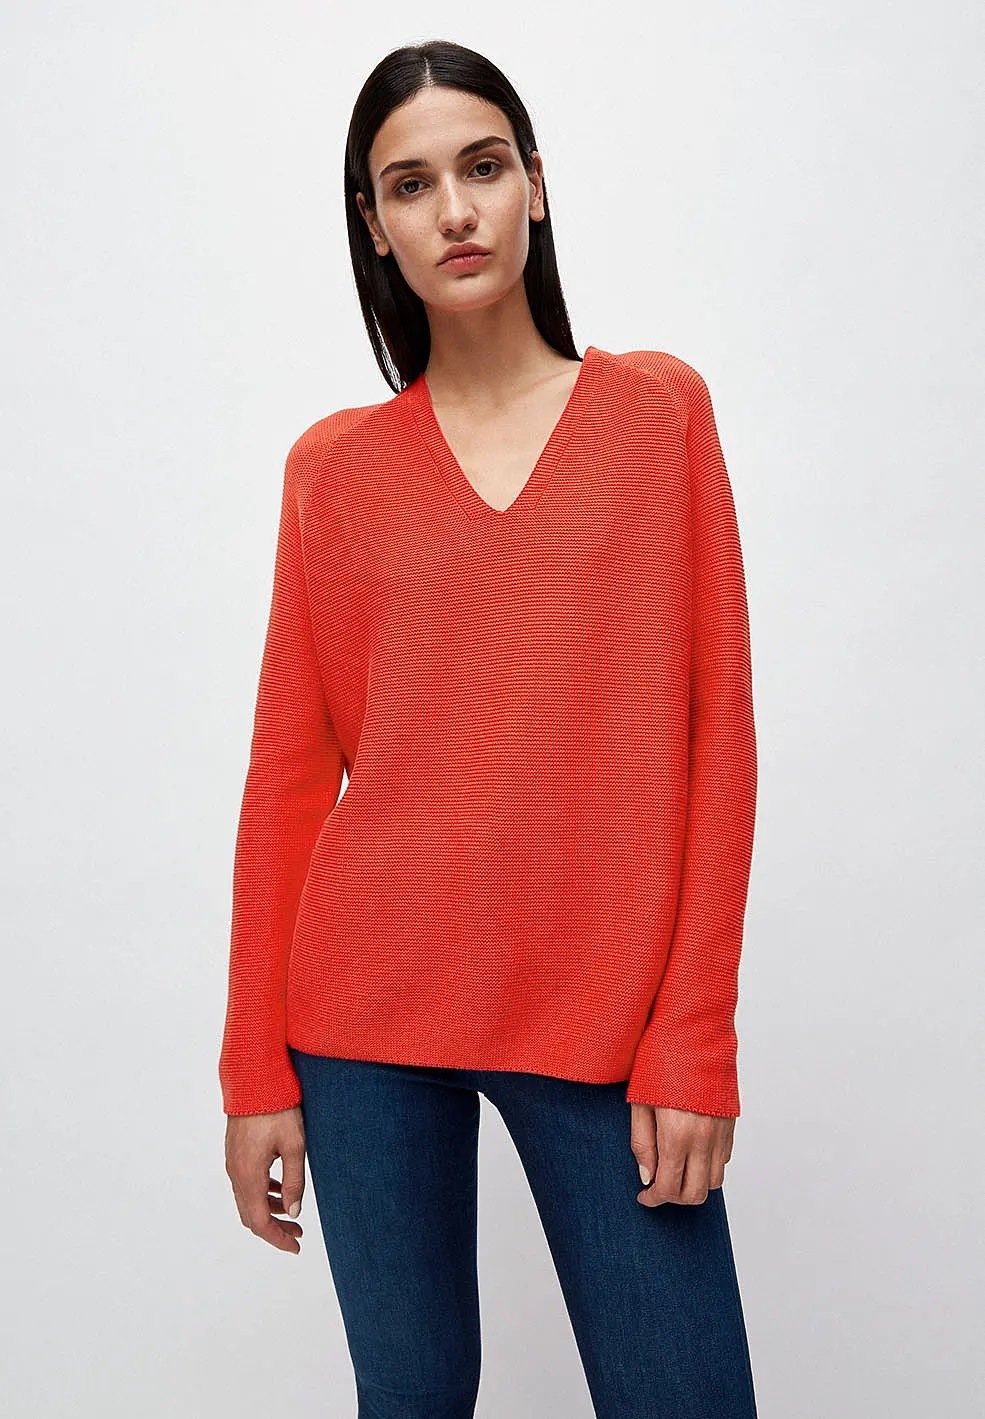 Faarina-knit-armedangels-red